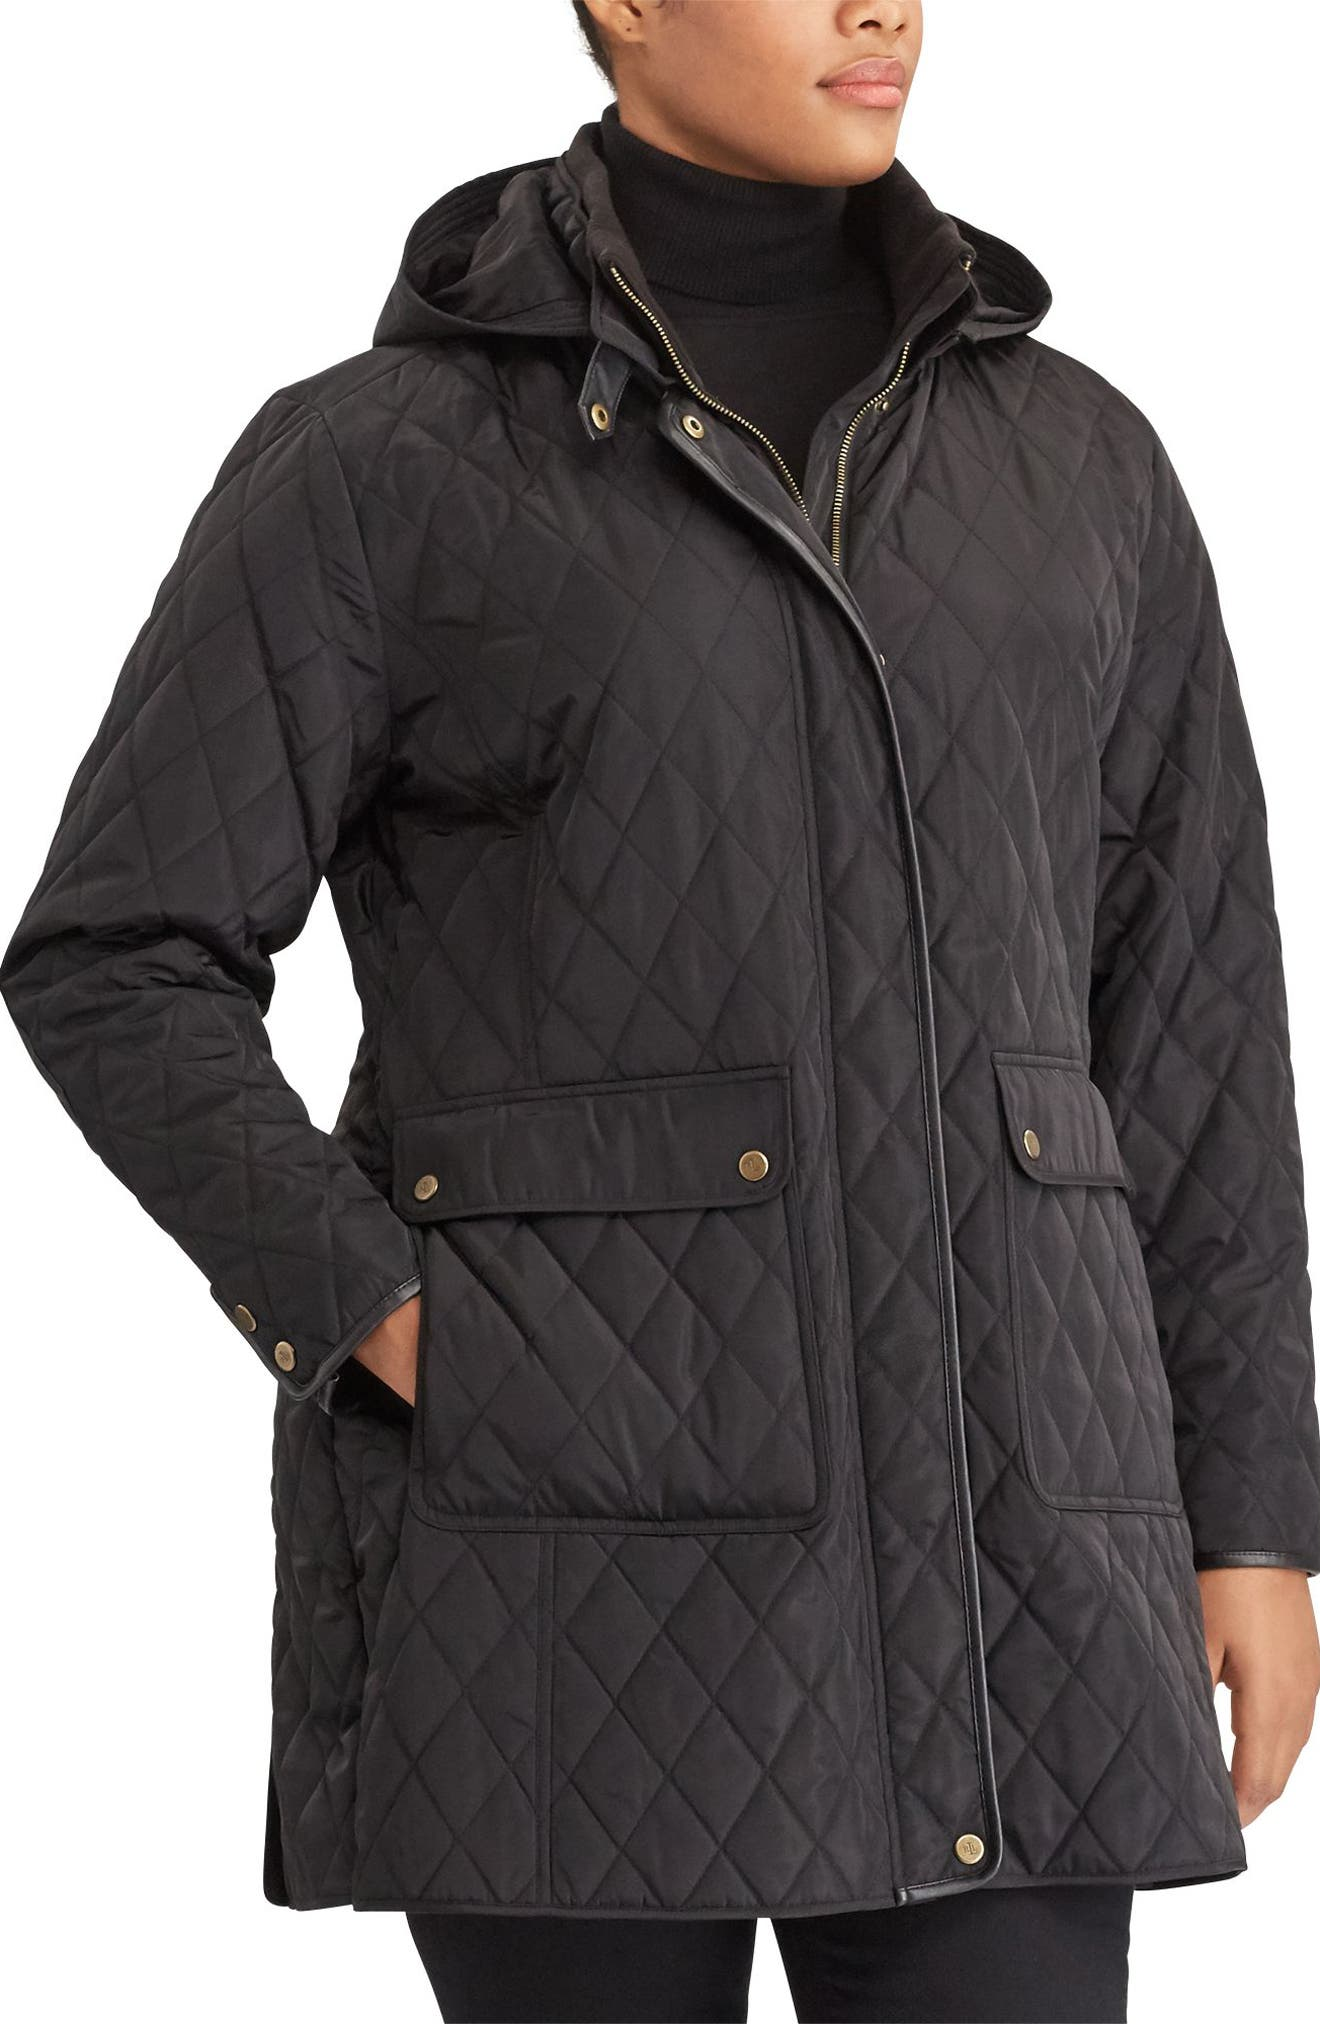 Diamond Quilted Jacket with Faux Leather Trim,                             Main thumbnail 1, color,                             Black